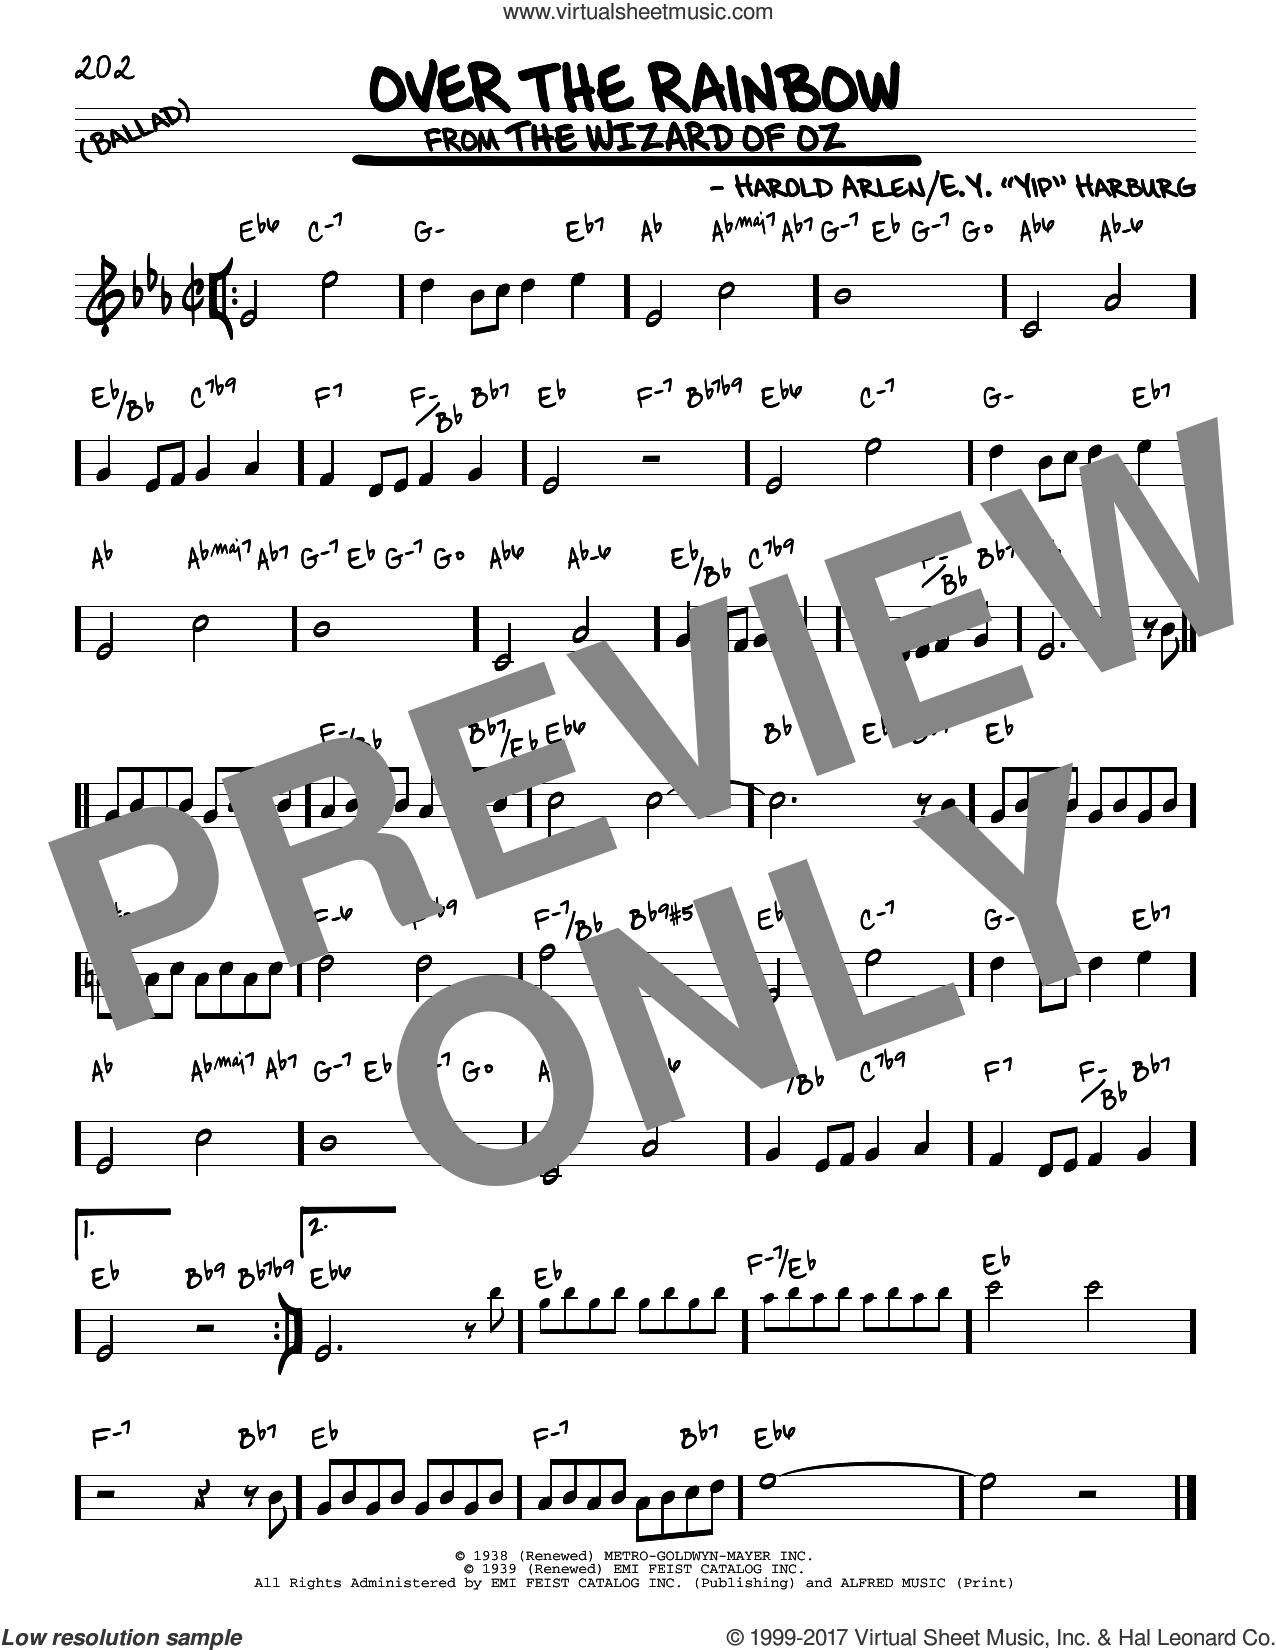 Over The Rainbow sheet music for voice and other instruments (real book) by Harold Arlen and E.Y. Harburg, intermediate skill level